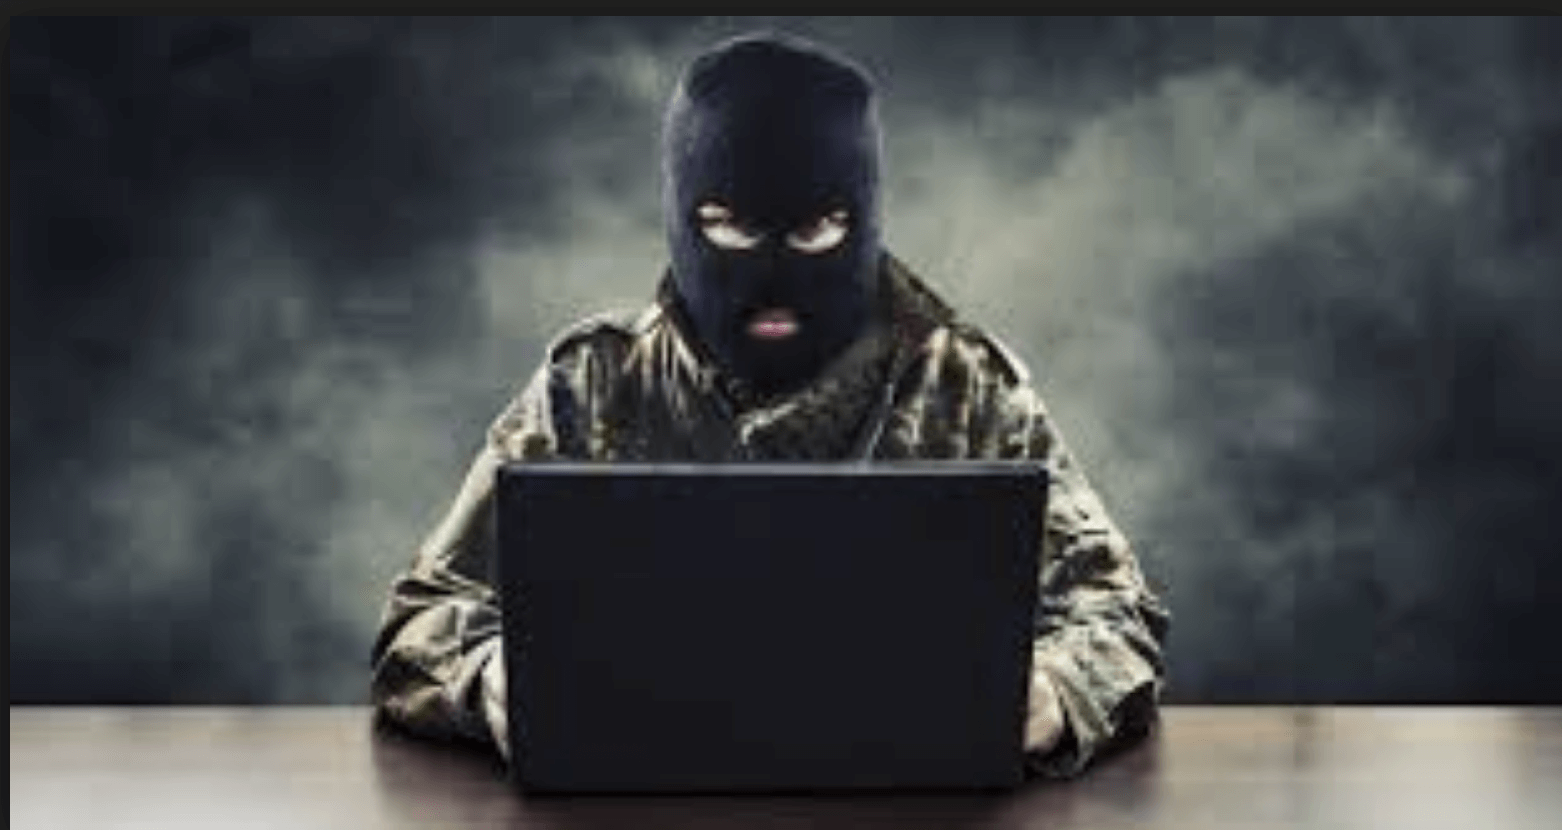 Is ISIS Still Alive And Well On The Internet?